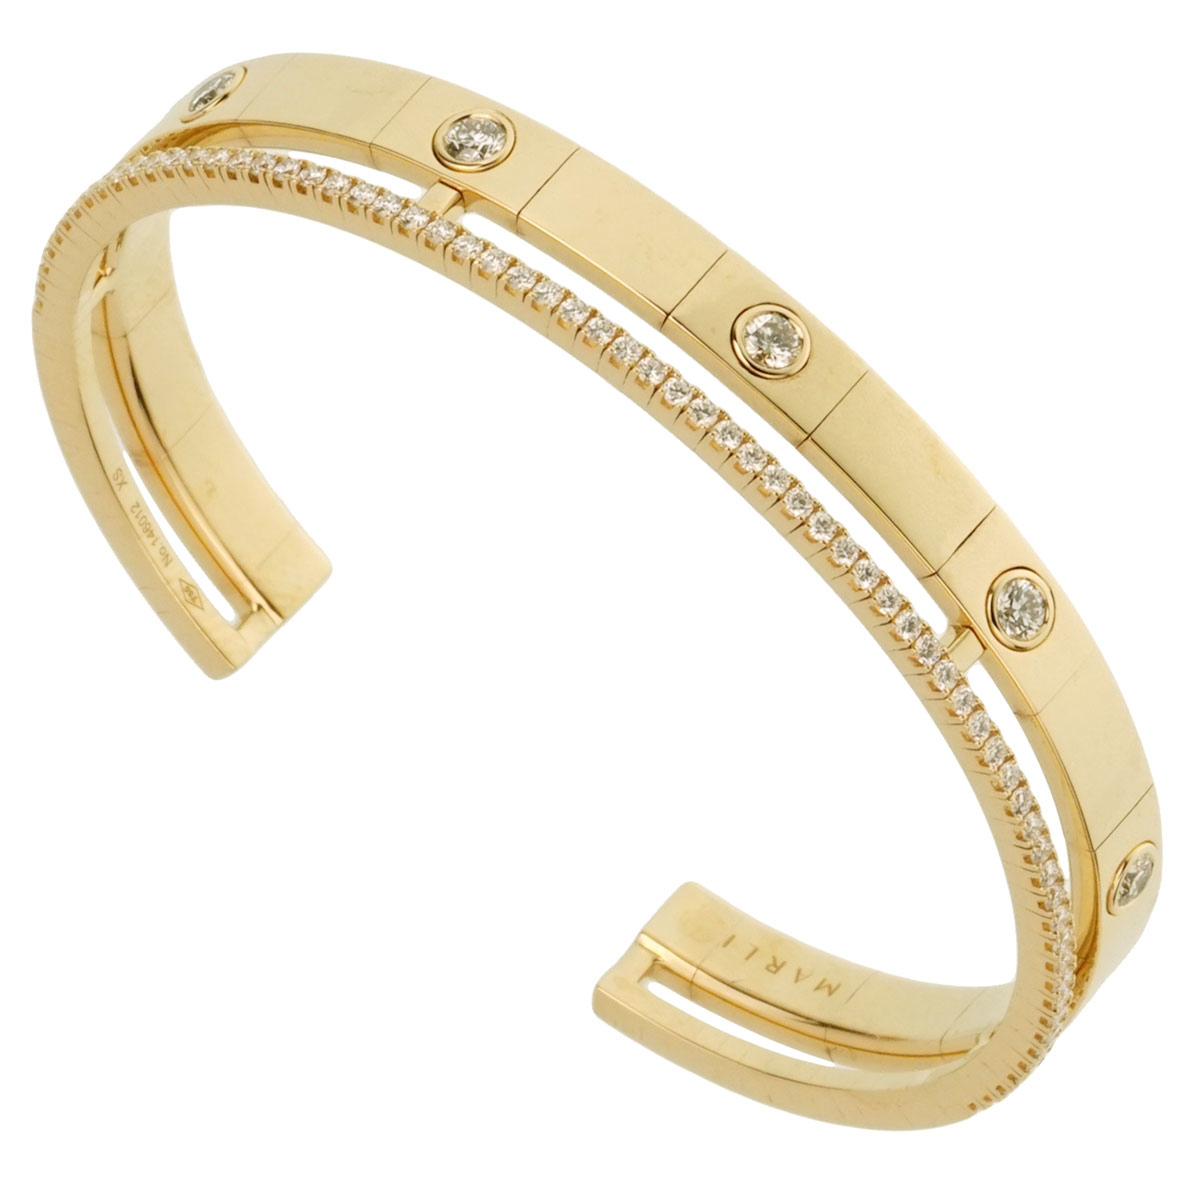 Marli Diamond Yellow Gold Slip On Cuff Bangle Bracelet